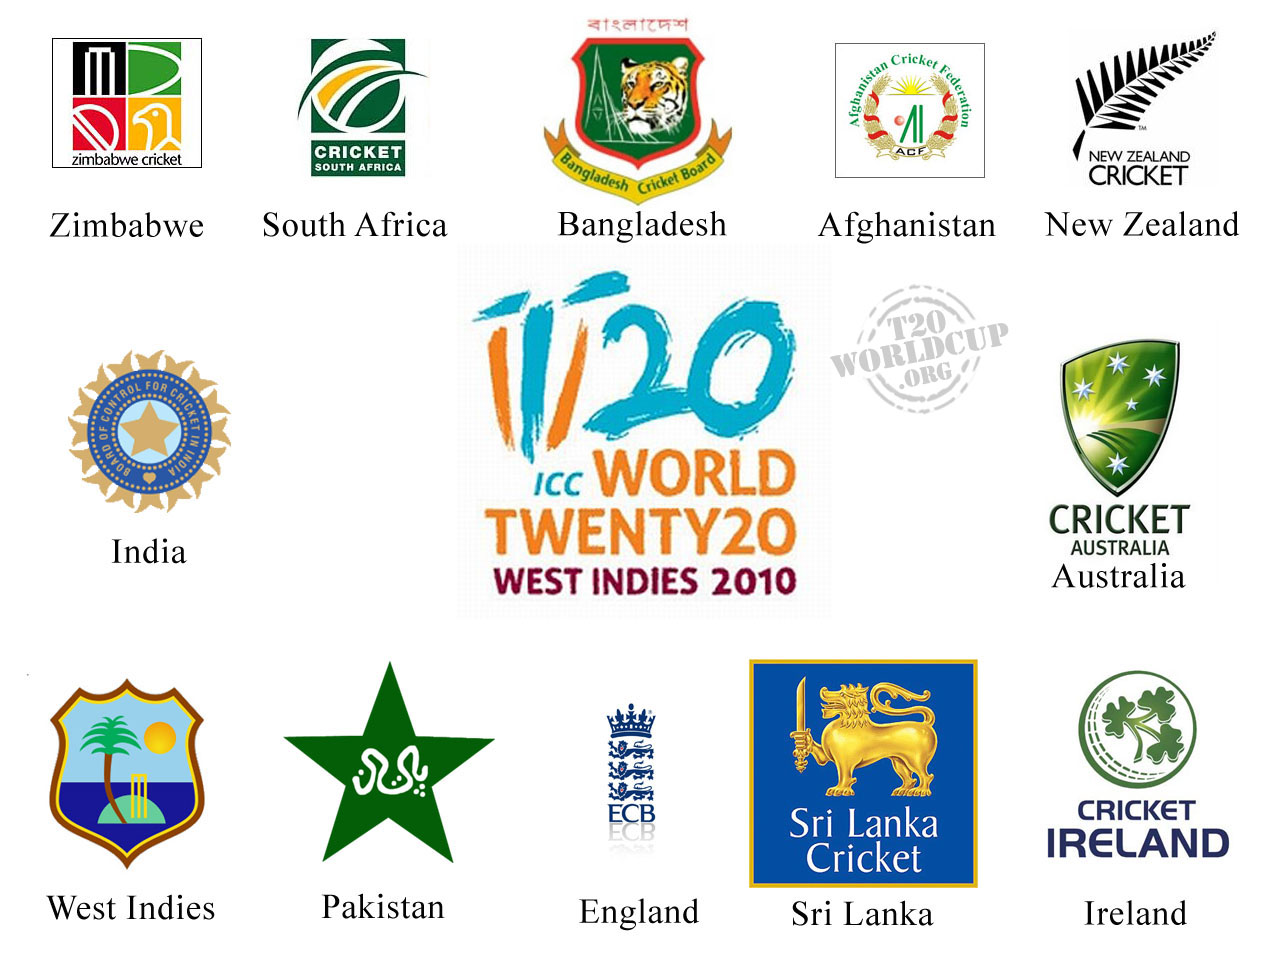 ... : T20 World Cup Gallery , T20 World Cup News , T20 World Cup Teams